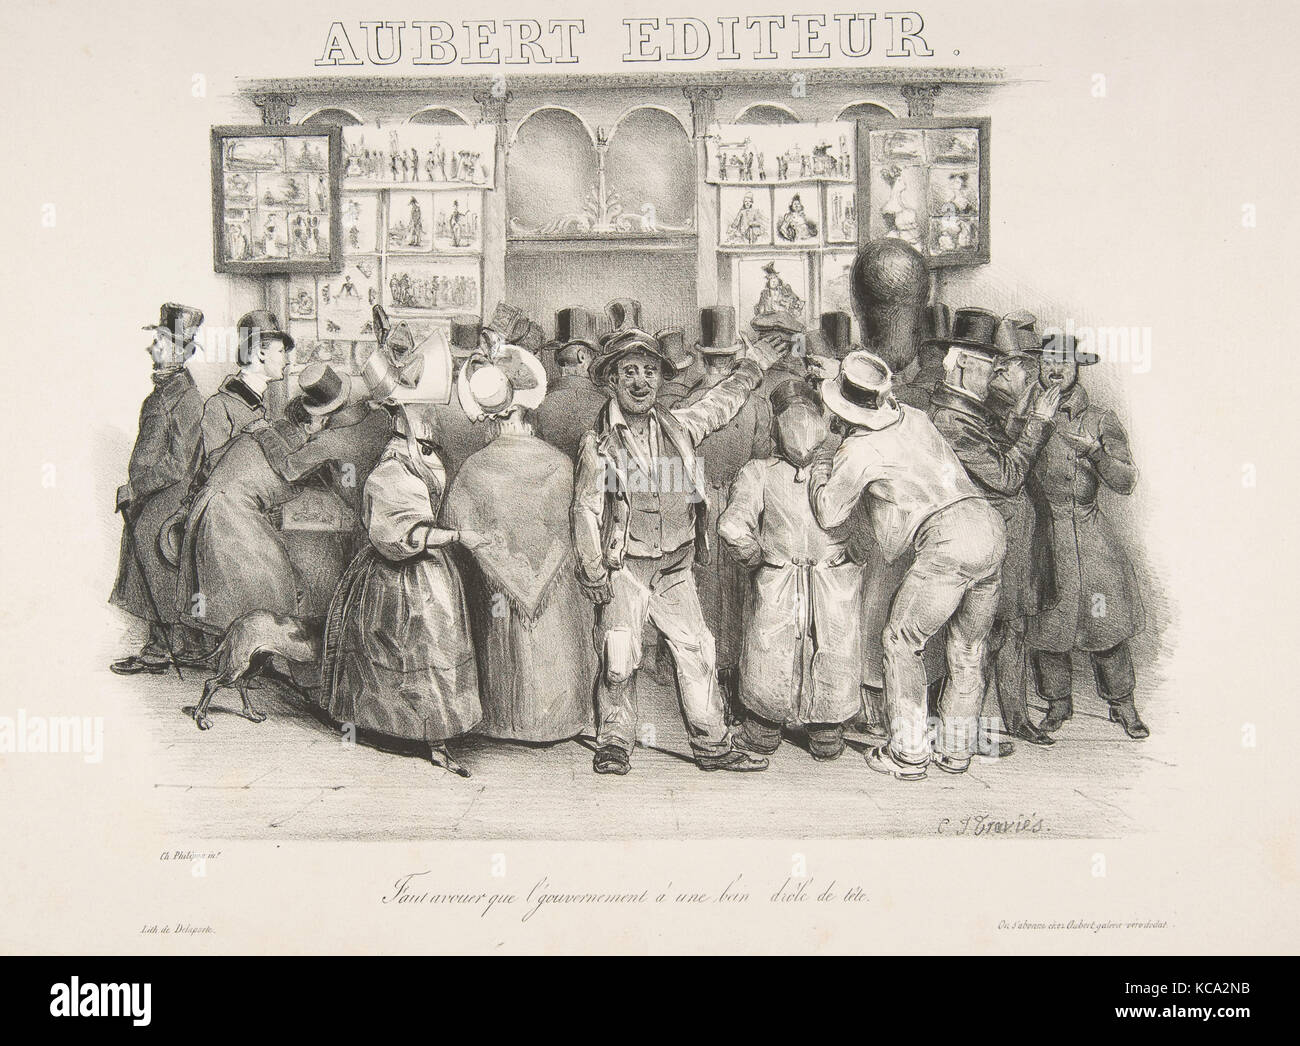 The Publisher Aubert (You must admit the government has a comic appearance), Charles-Joseph Traviès, 1831 Stock Photo